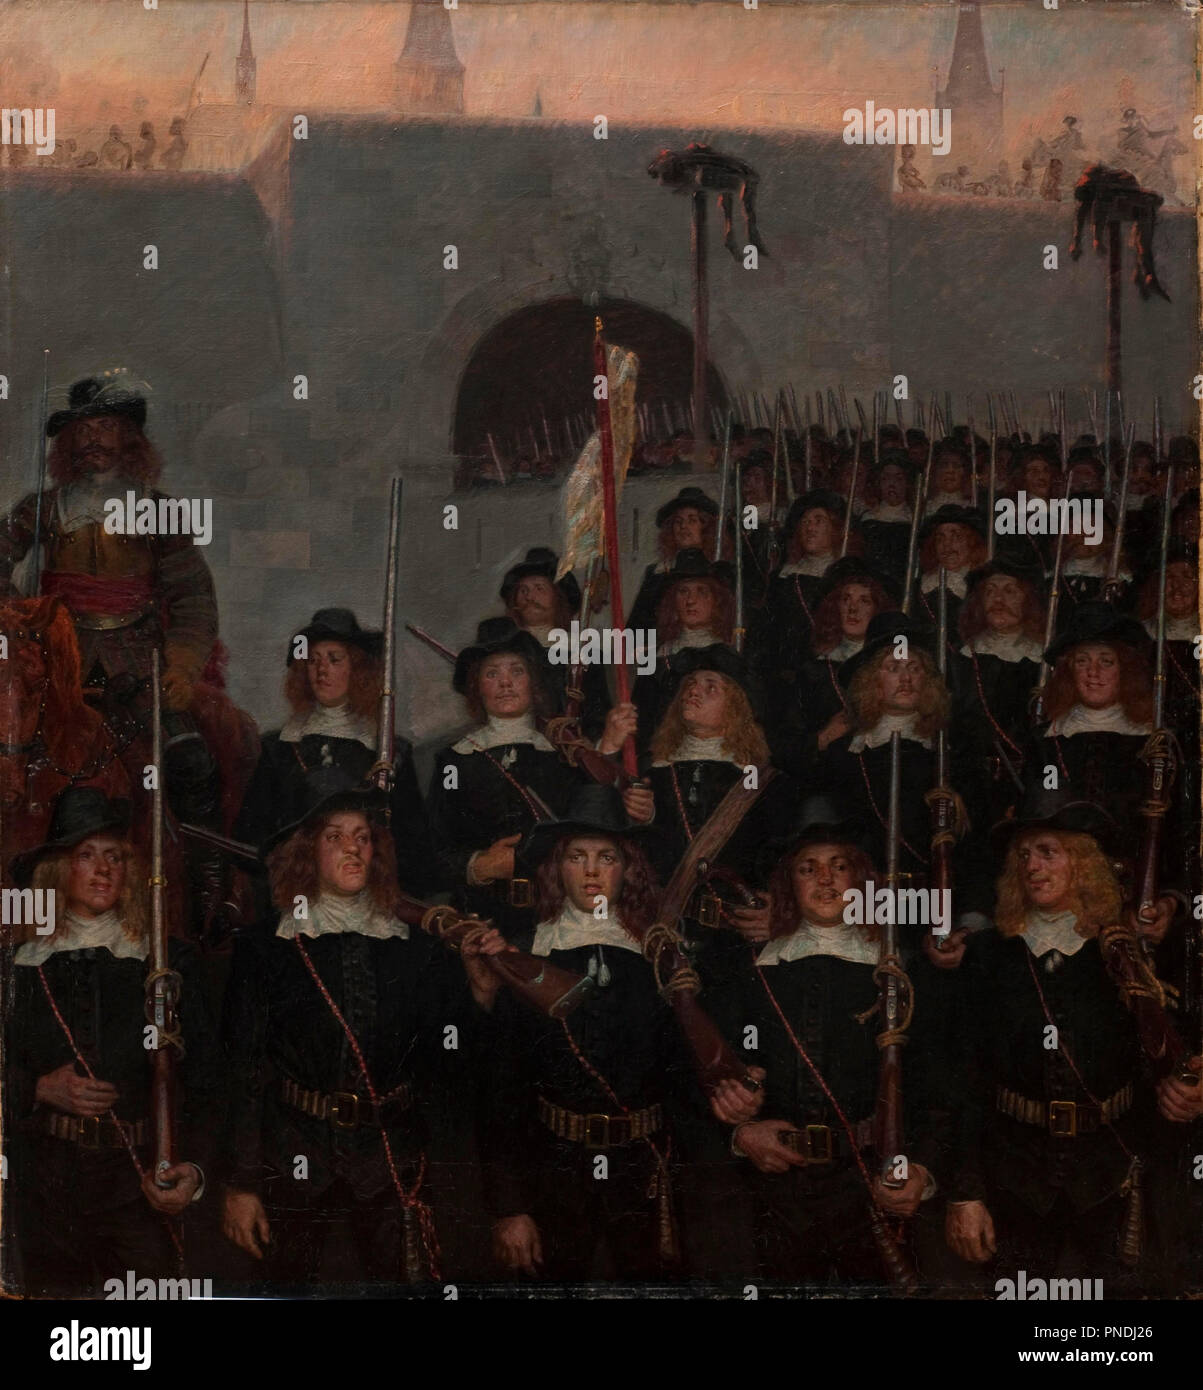 Students leave to defend Copenhagen in 1658. Date/Period: 1888. Painting. Canvas and oil. Width: 103 cm. Height: 110 cm. Author: KRISTIAN ZAHRTMANN. Stock Photo